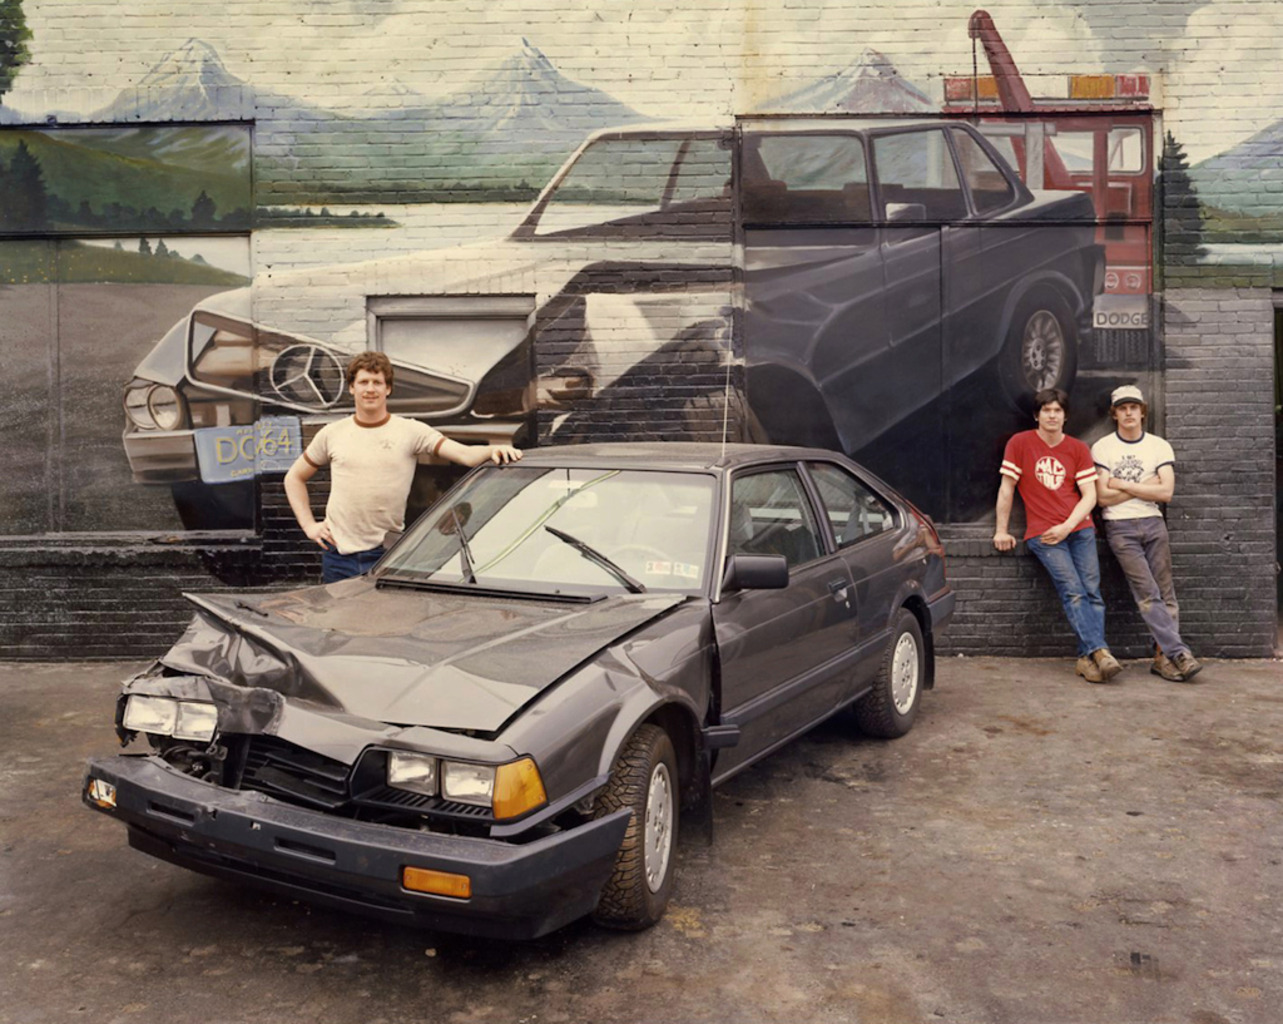 <em>Crashed Car, Burlington, NJ,</em> 1985